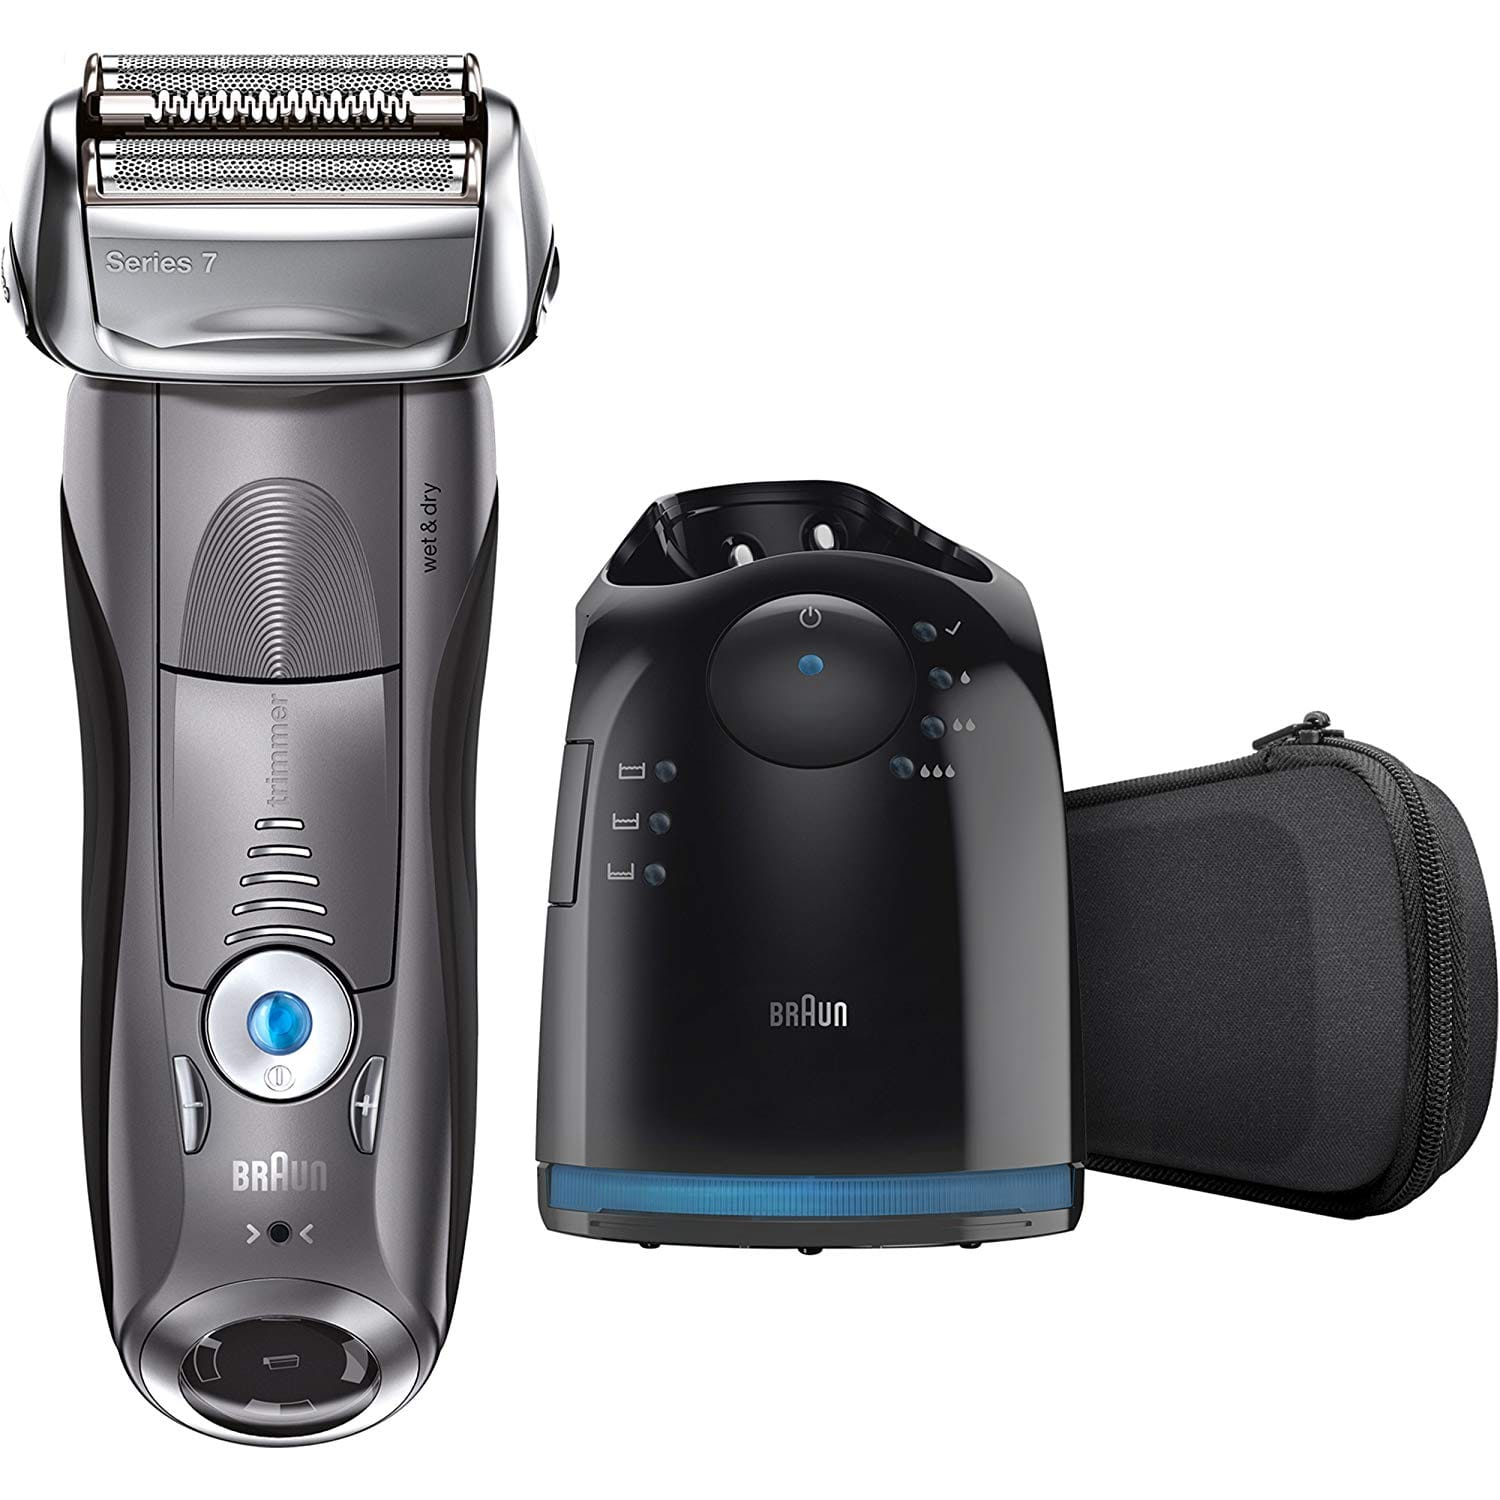 Braun Electric Razor for Men, Series 7 7865cc Electric Shaver With Precision Trimmer, Rechargeable, Wet & Dry Foil Shaver, Clean & Charge Station & Travel Case $119.94